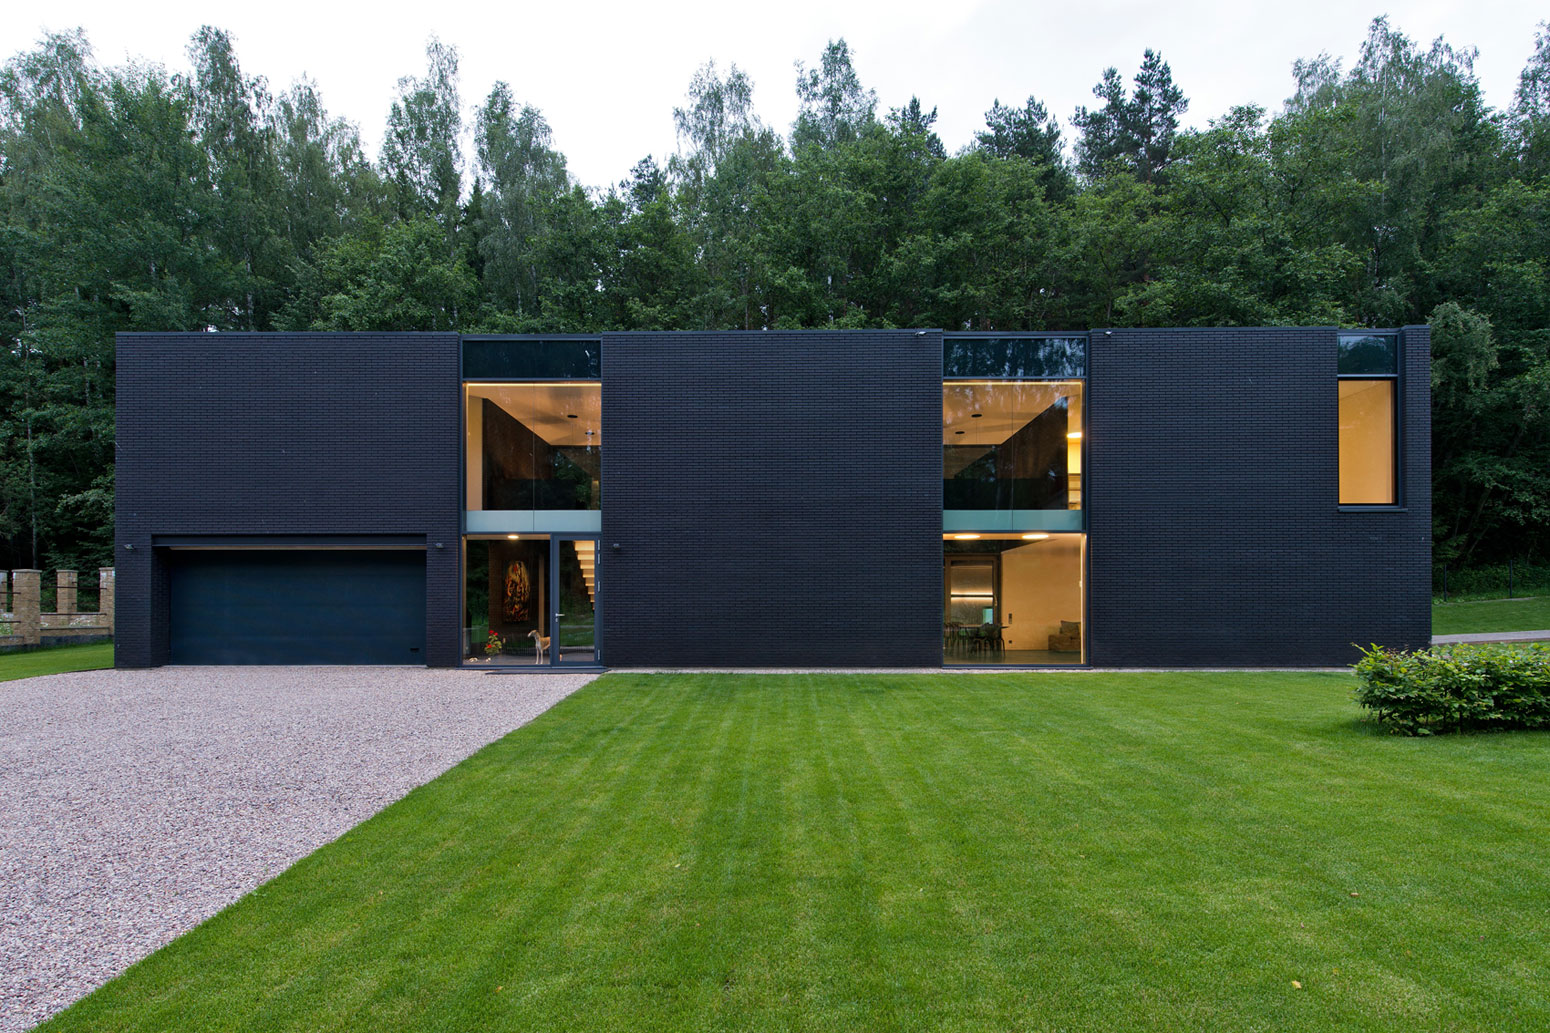 Black Boxed Family House in Minsk by Architectural Bureau G. Natkevicius & Partners-10